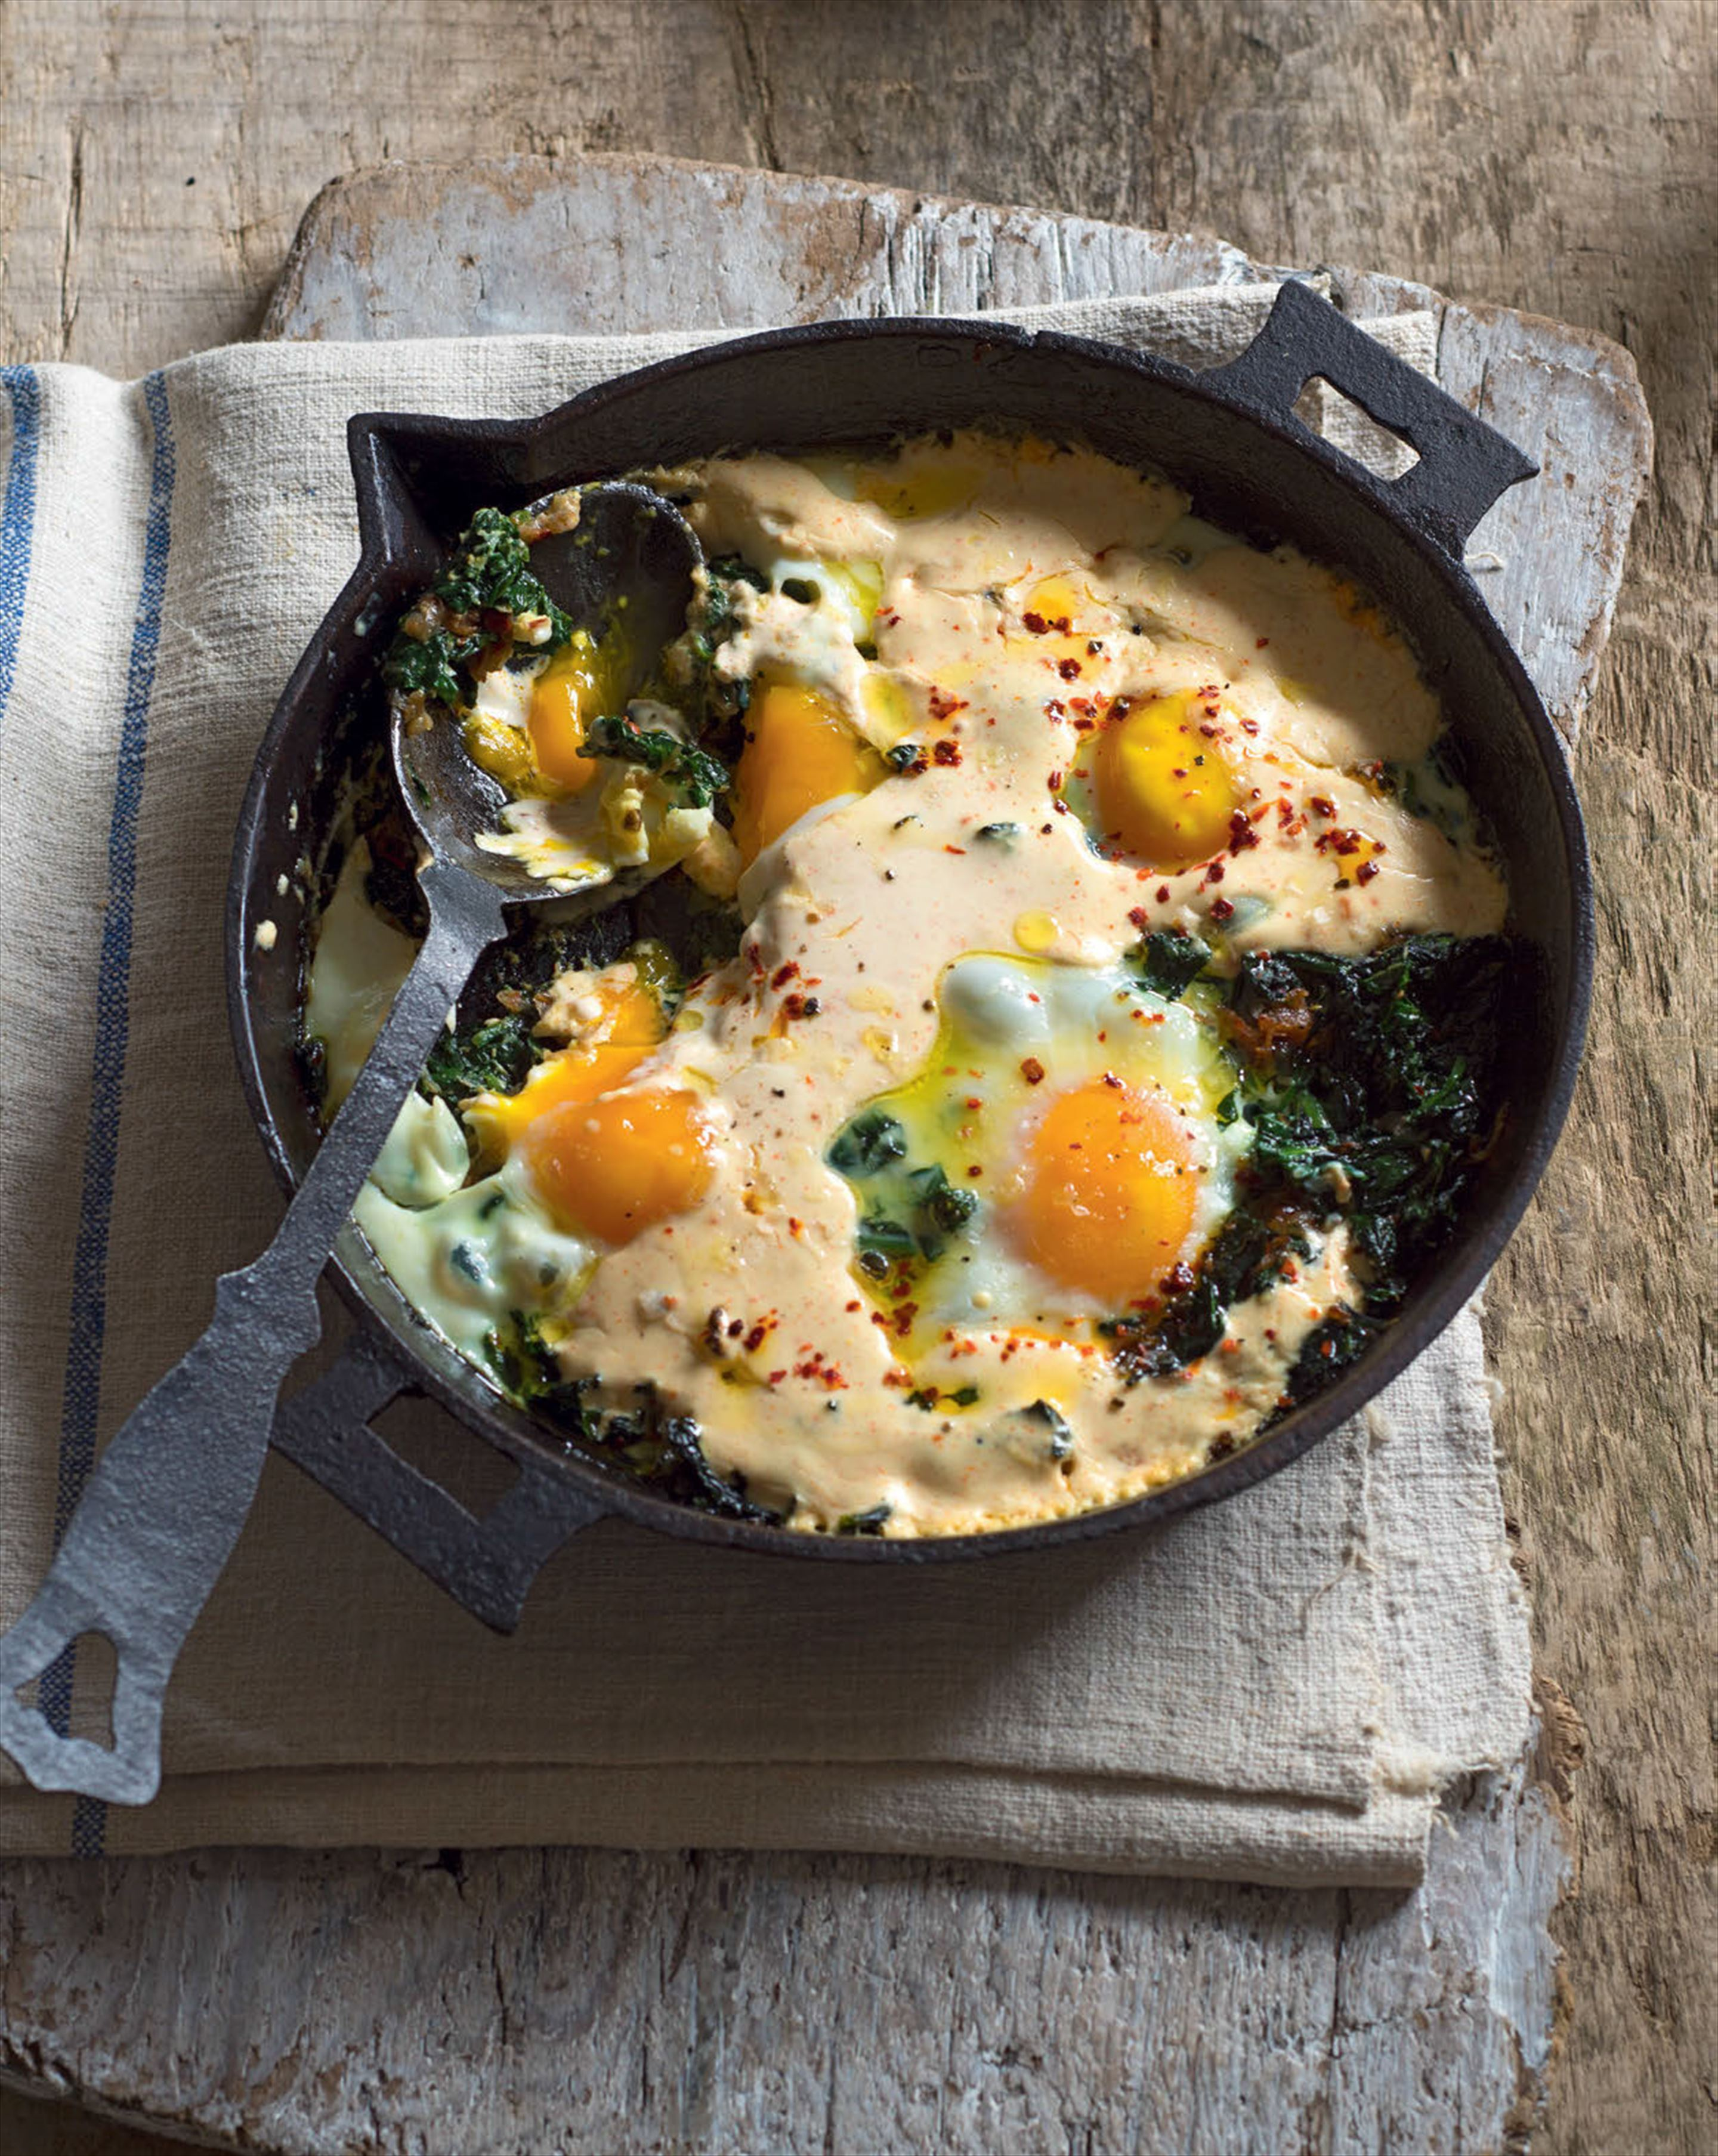 Turkish eggs with spinach, chilli & yoghurt cream